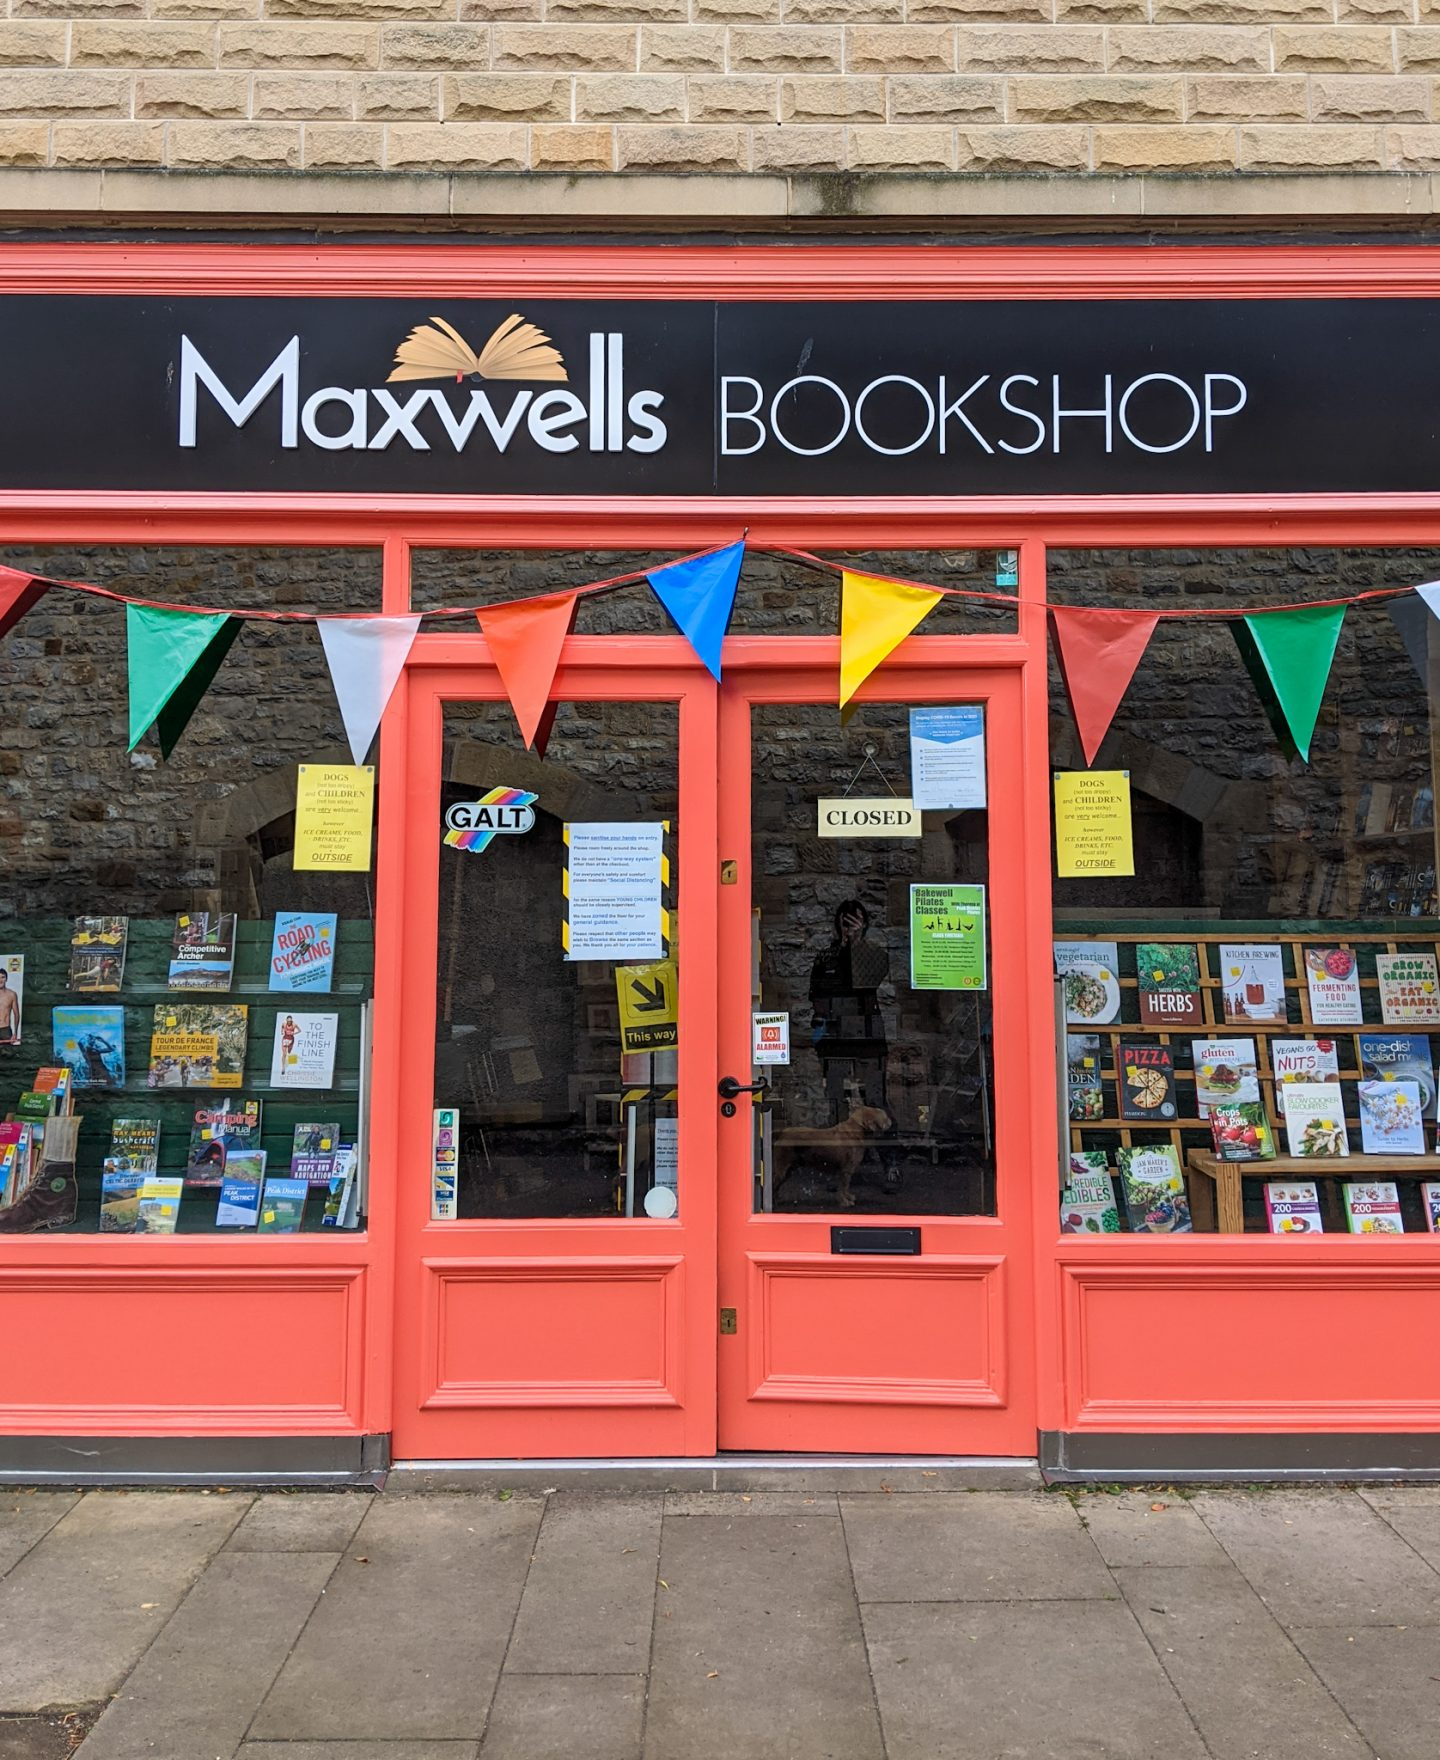 The entrance of Maxwells Bookshop, Bakewell, which is painted red and has bunting hanging above double doors.